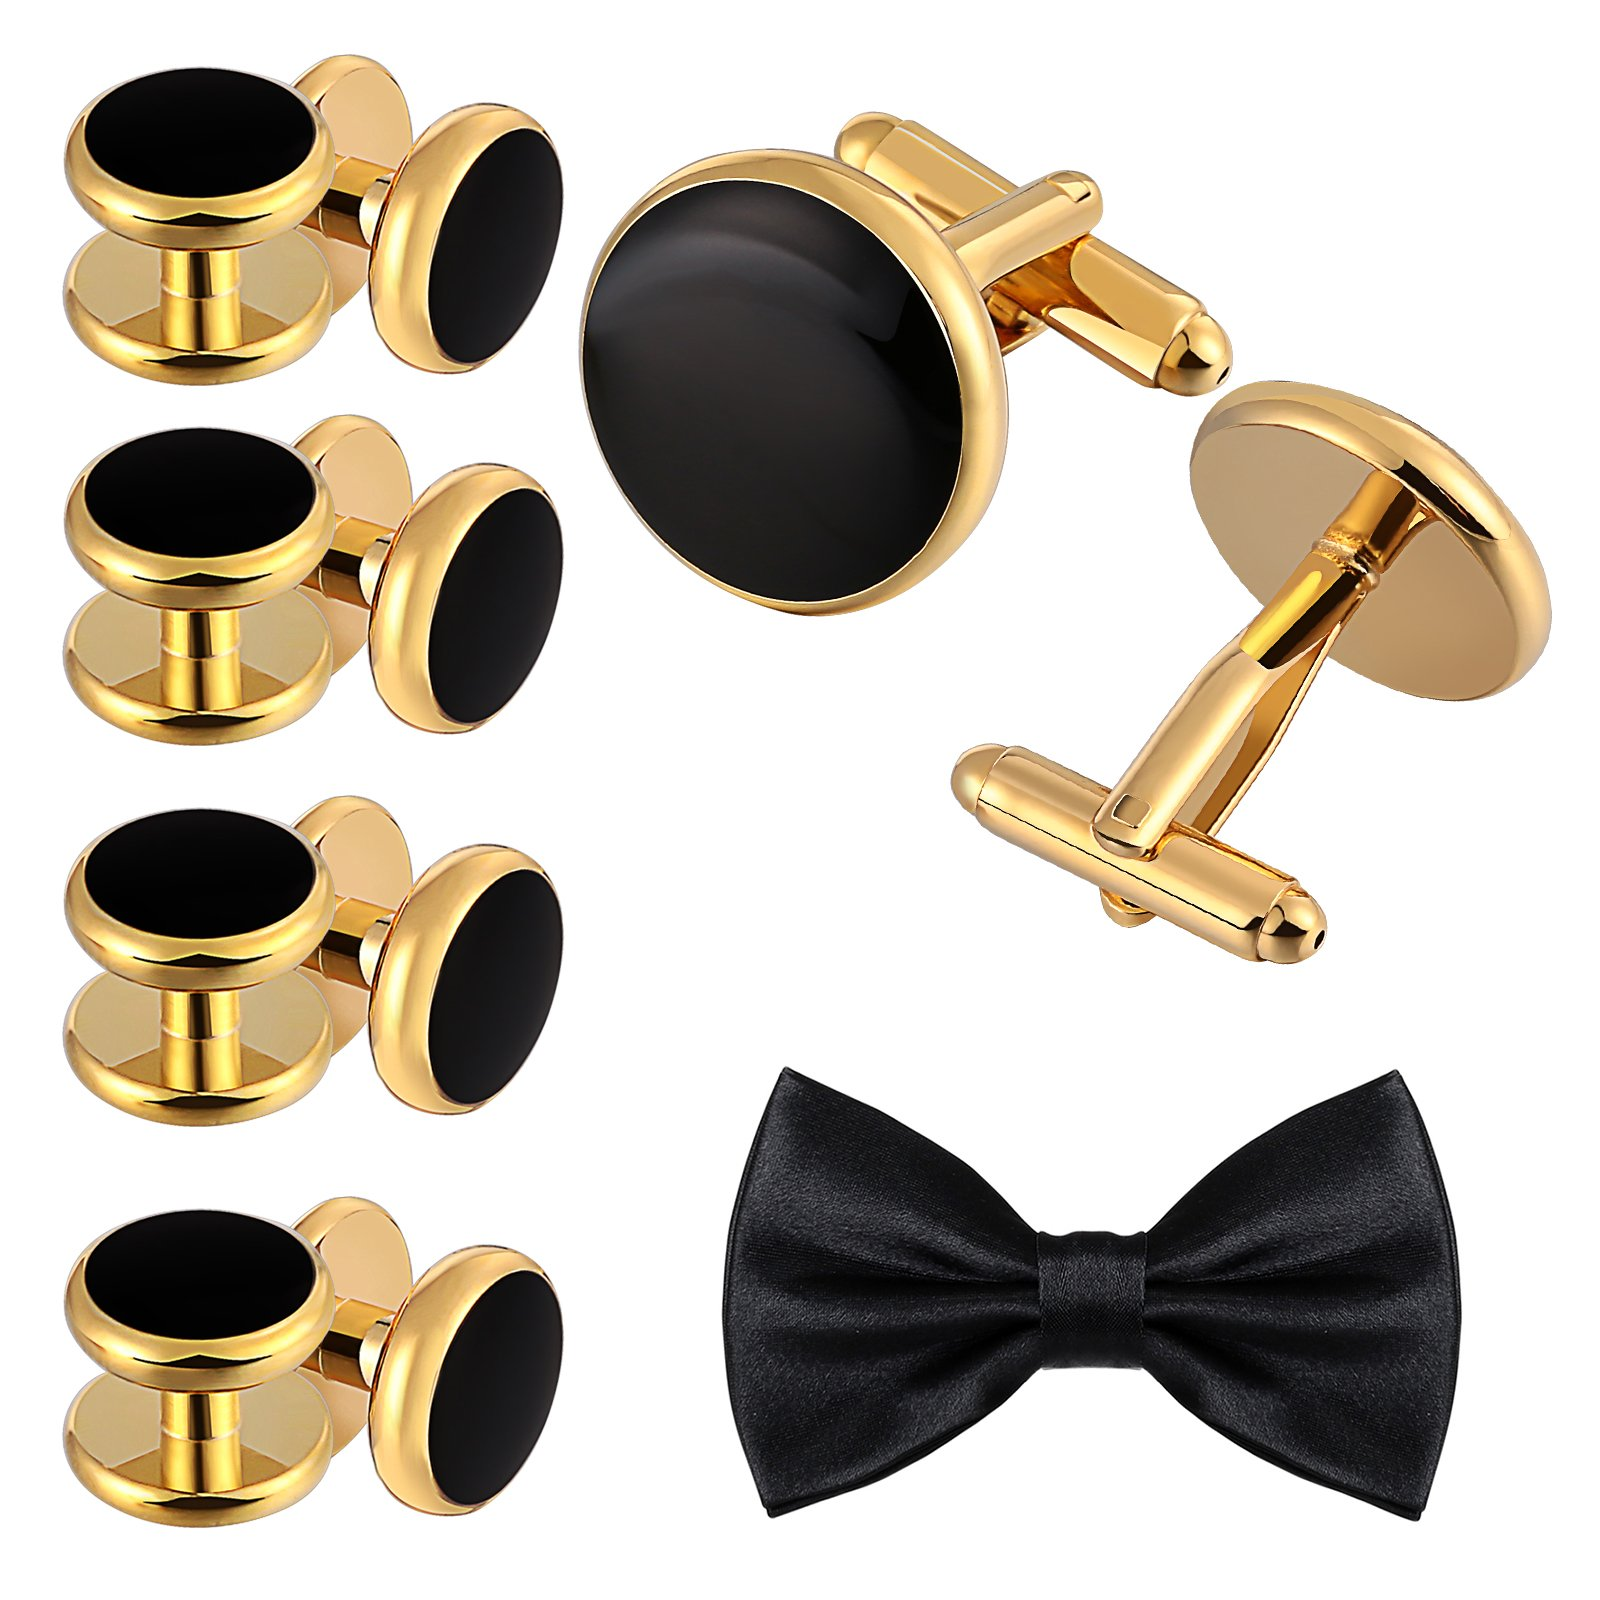 Aienid Mens Cuff Links Polished Finish Stainless Steel Luxury French Tuxedo Shirt Cufflinks for Men